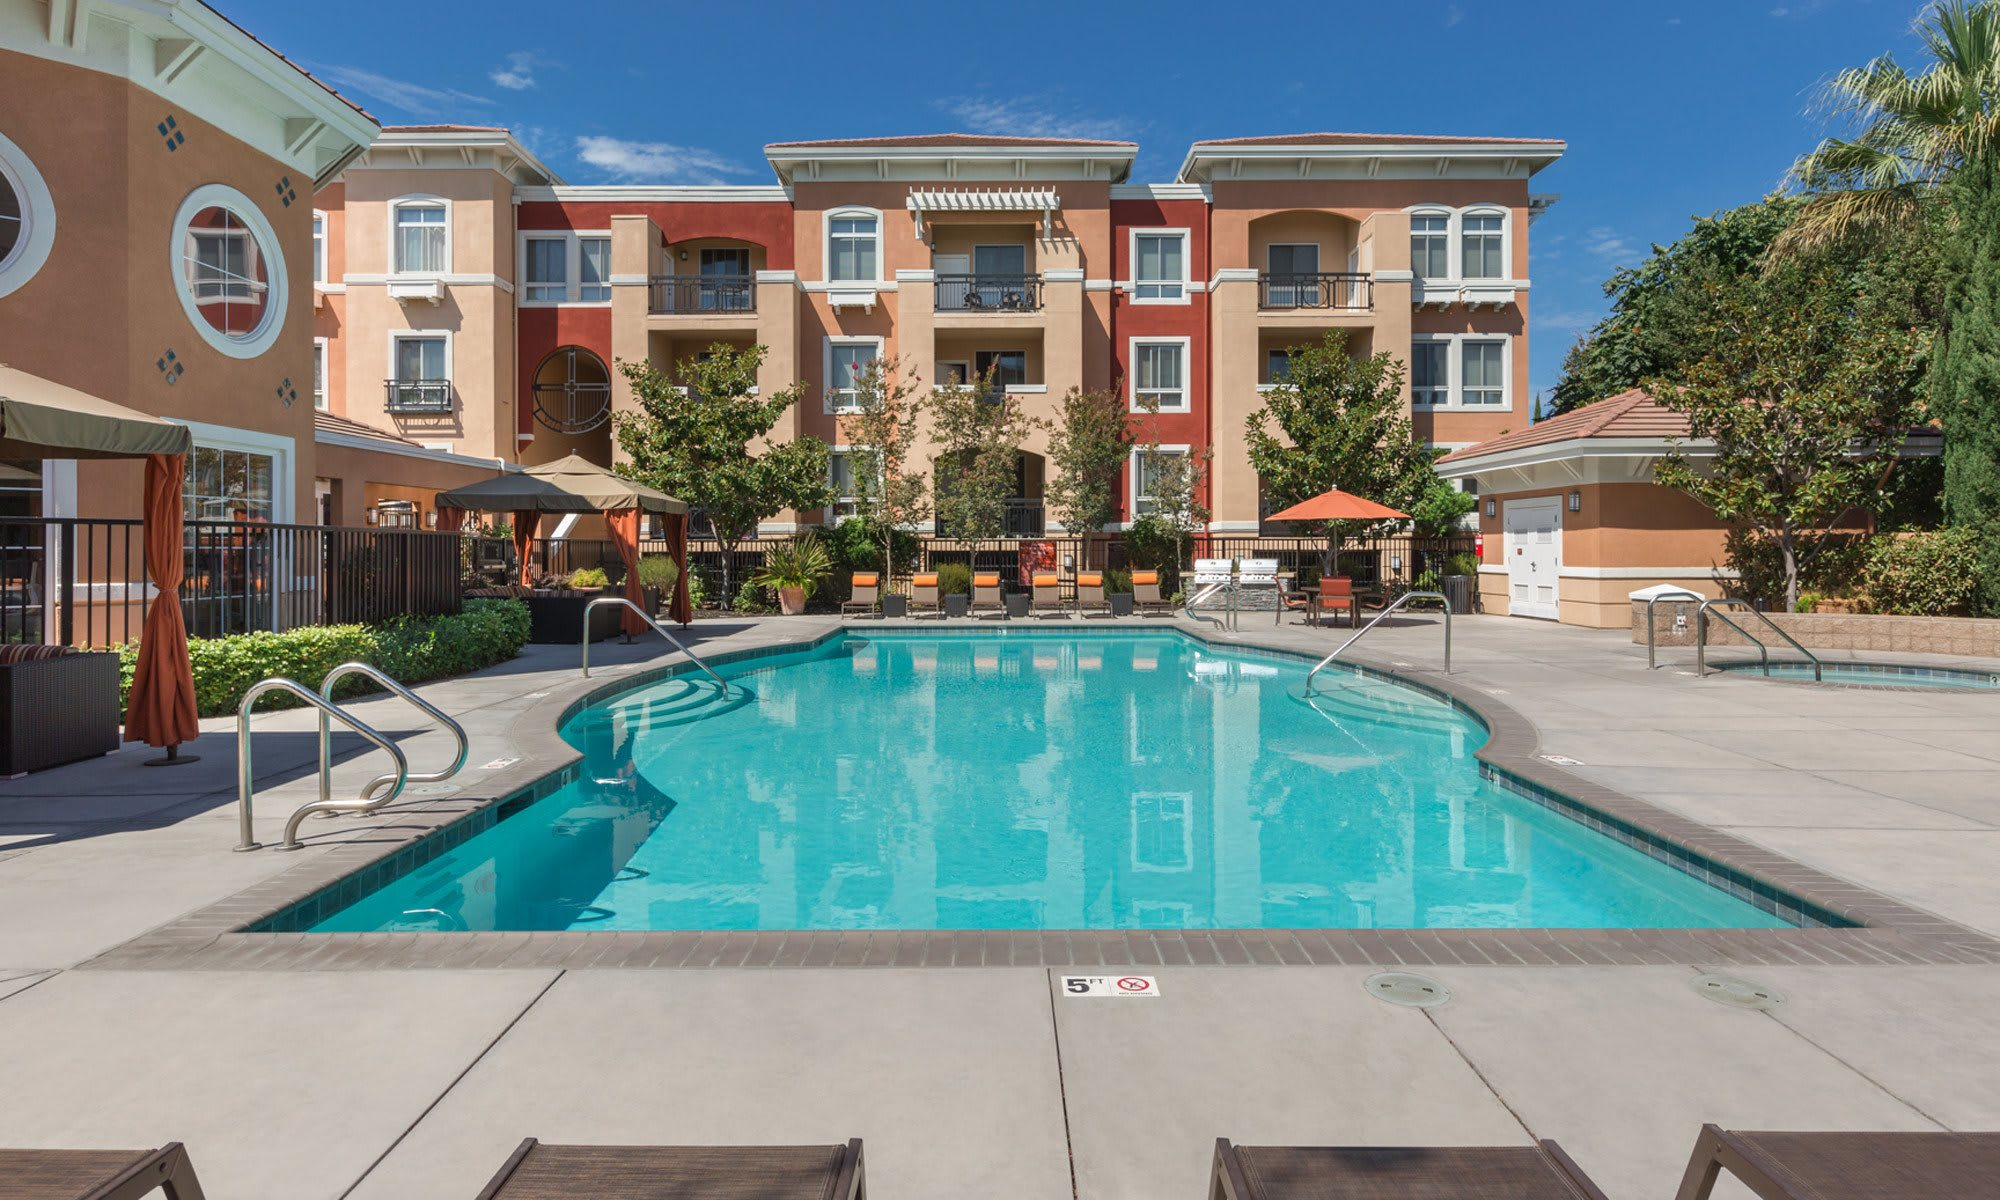 Apartments In Sunnyvale, CA Photo Gallery